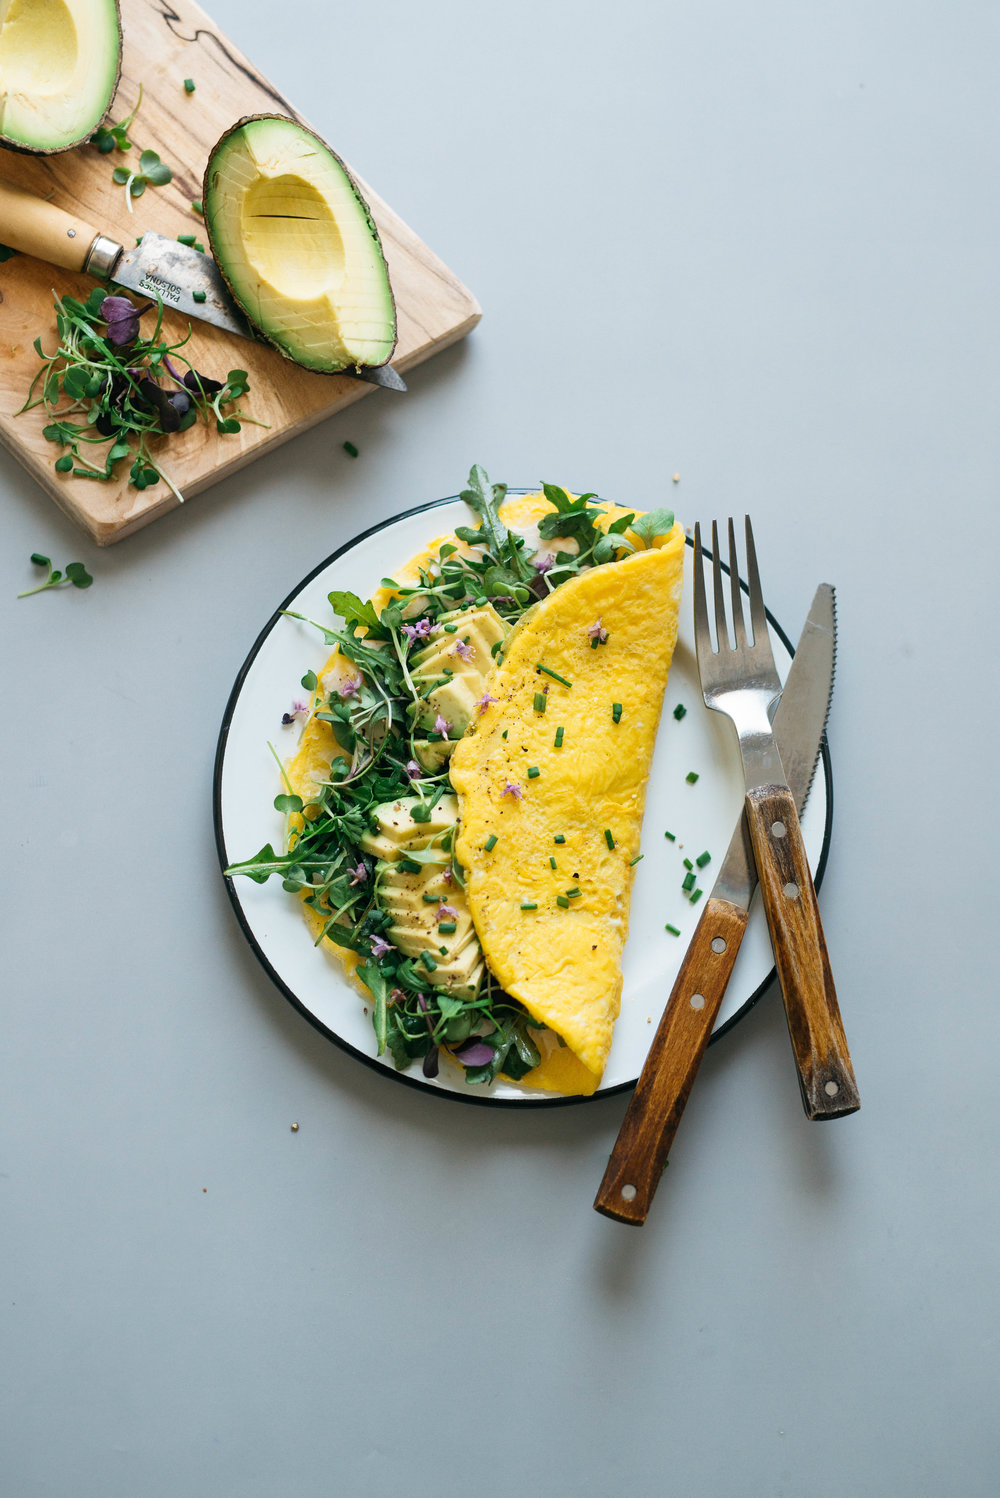 """NUMBER 6:  BREAKFAST FOR DINNER: """"CREAM CHEESE"""" OMELETTES W/ BALSAMIC GREENS   breakfast for dinner is a staple in my house, and i was so happy to learn that it's a favorite of yours as well! such a simple little recipe of refrigerator and pantry components that come together offering a good amount of protein, healthy fats, and fiber 💪🏼leaving your belly full and happy!"""